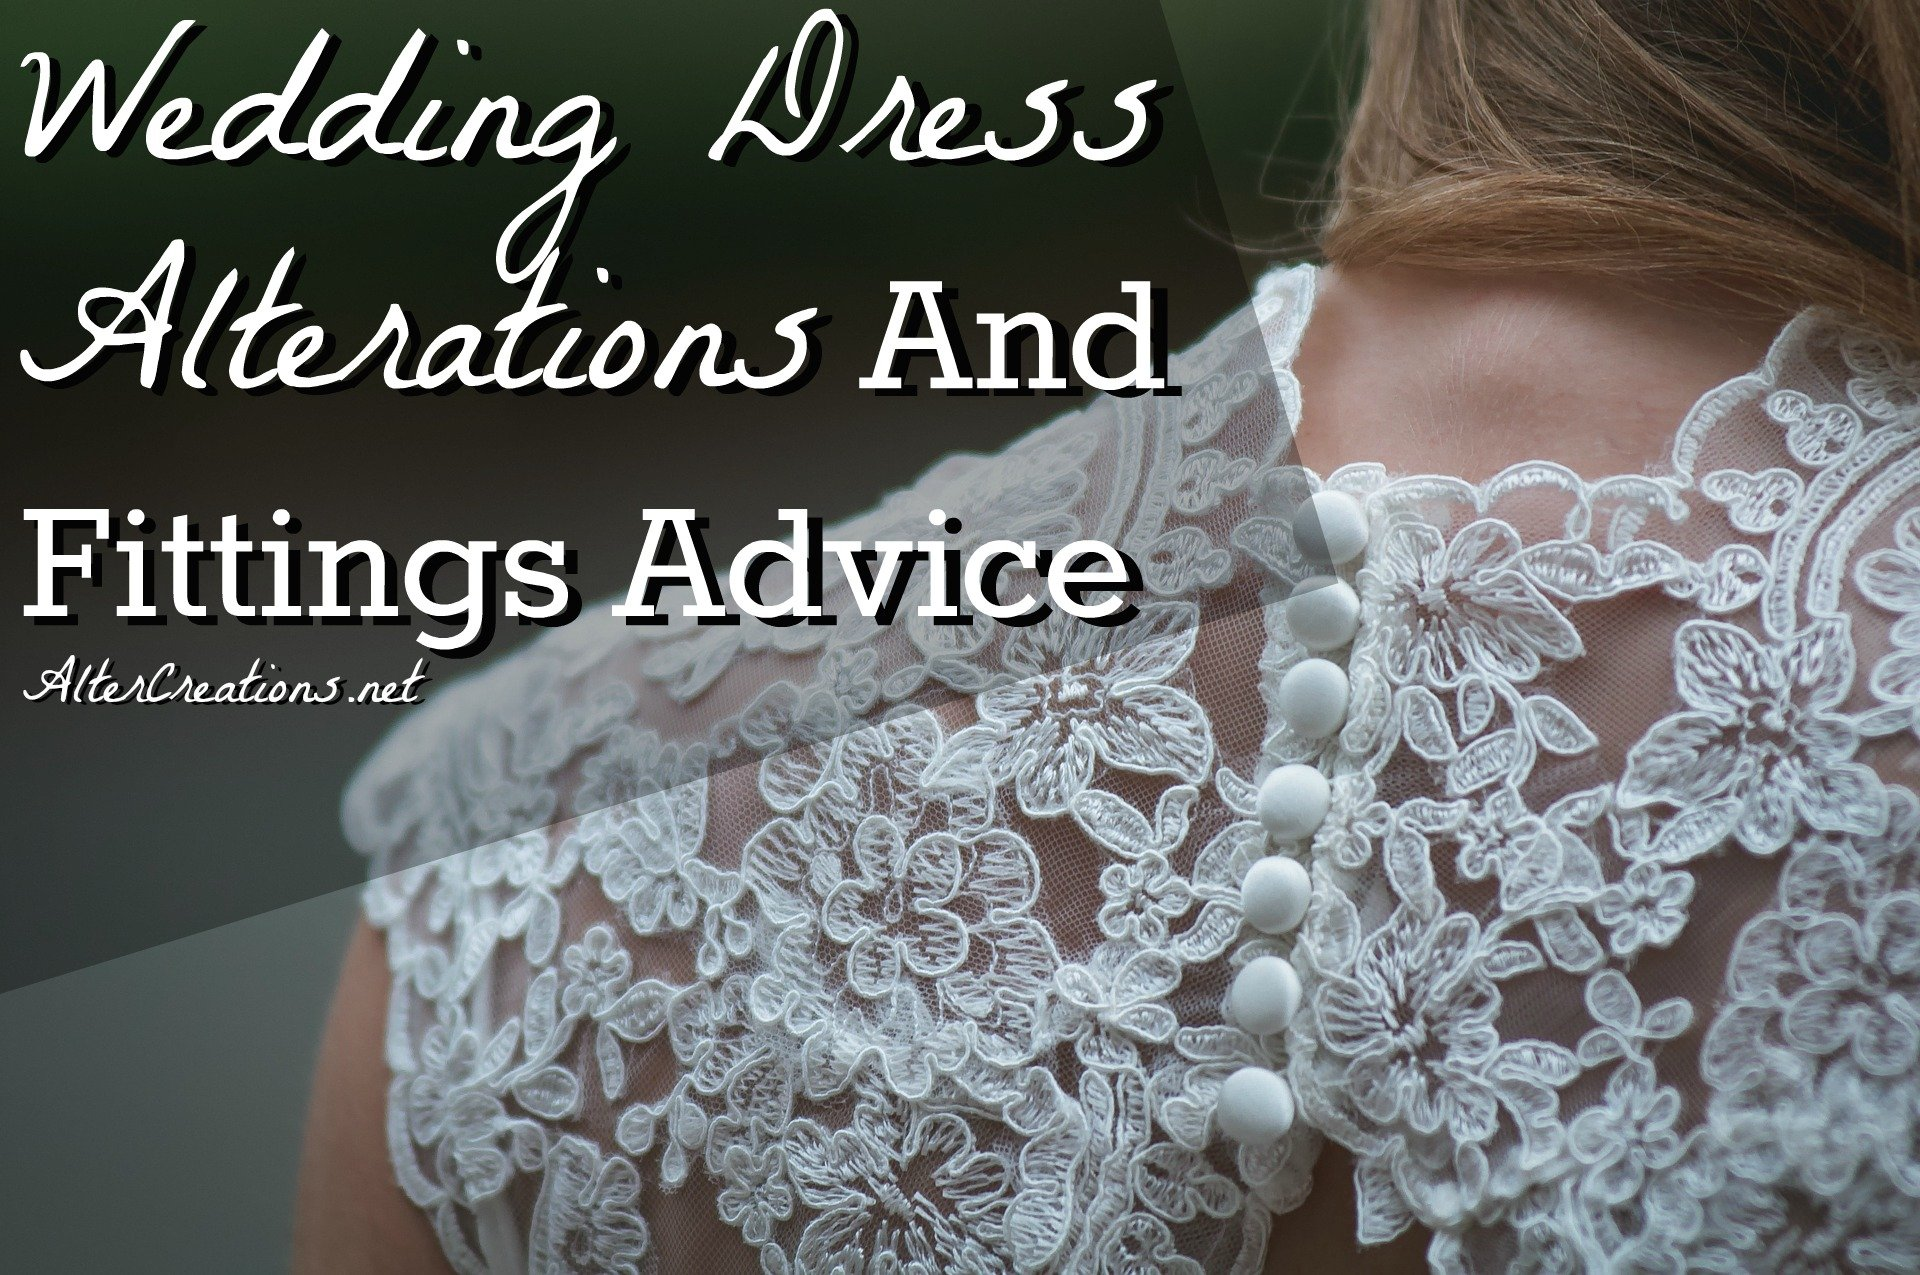 Wedding Dress Alterations And Fittings Advice